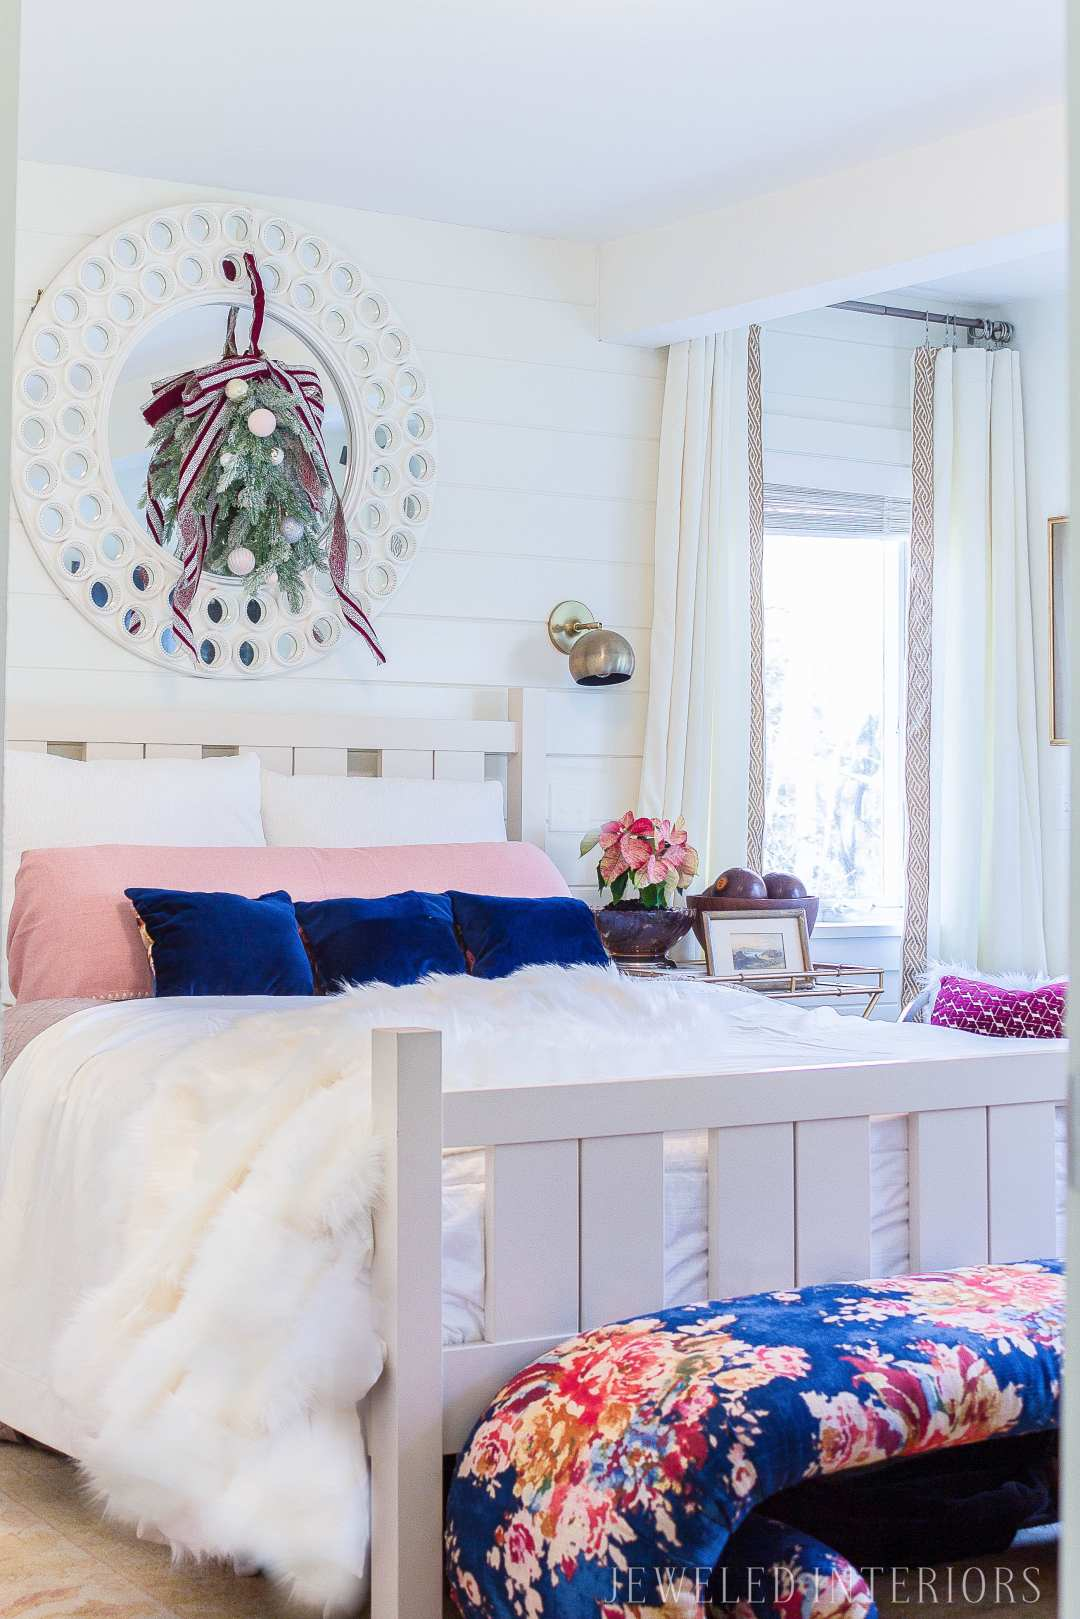 A white bedroom with pops of color: Looking for inspiration for a eclectic, chic, an glam Christmas? You have got to see this! Jeweled Interiors, Holiday, Home Tour, Burgundy, cranberry, blush, Christmas, Decor, Ideas, Tips, wreaths, Christmas, tree, decor, decorations, DIY, inspiration, red, maroon, wine, home tour, poinsettia, glam, chic, peach, gold, black, white